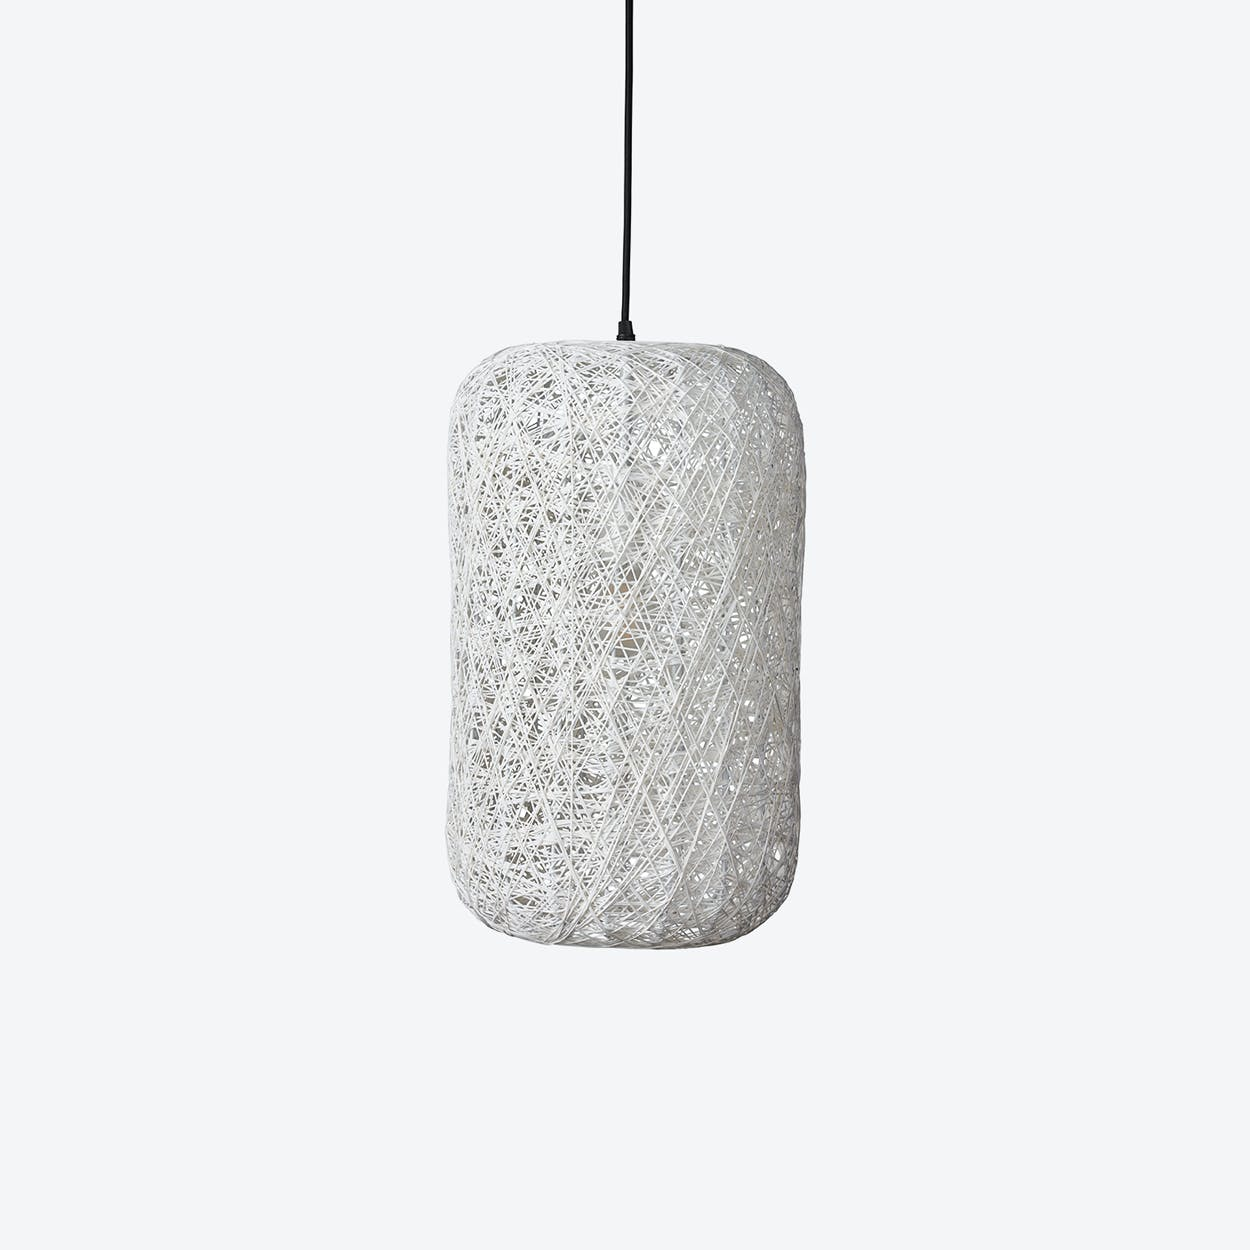 Medium Spin Pendant Lamp in White